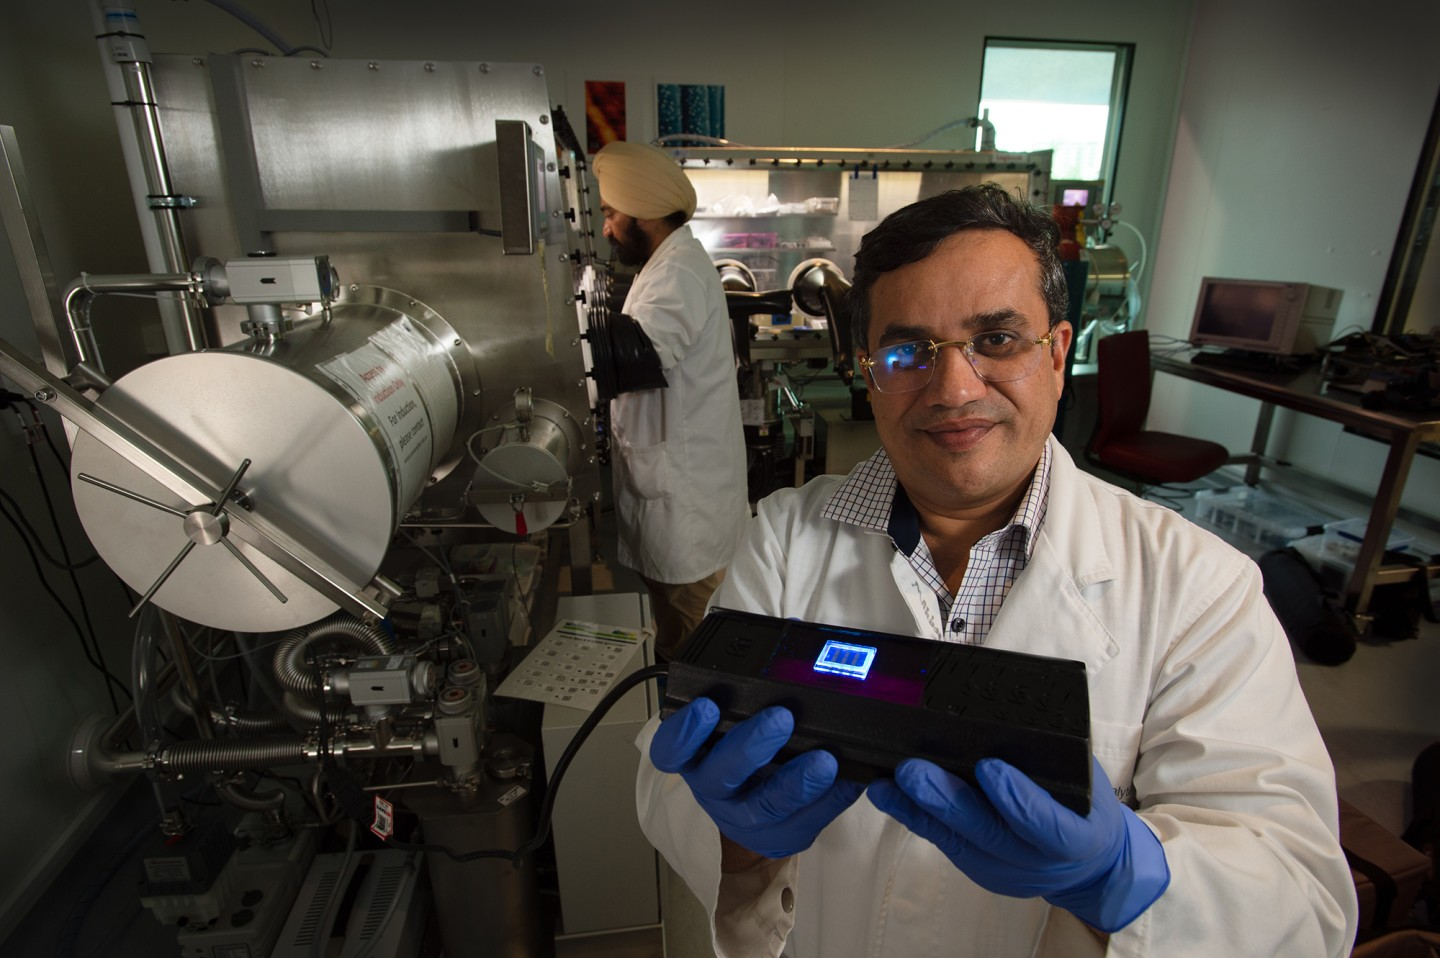 Researchers Prashant Sonar and Amandeep Singh Pannu with their nanodot OLED device